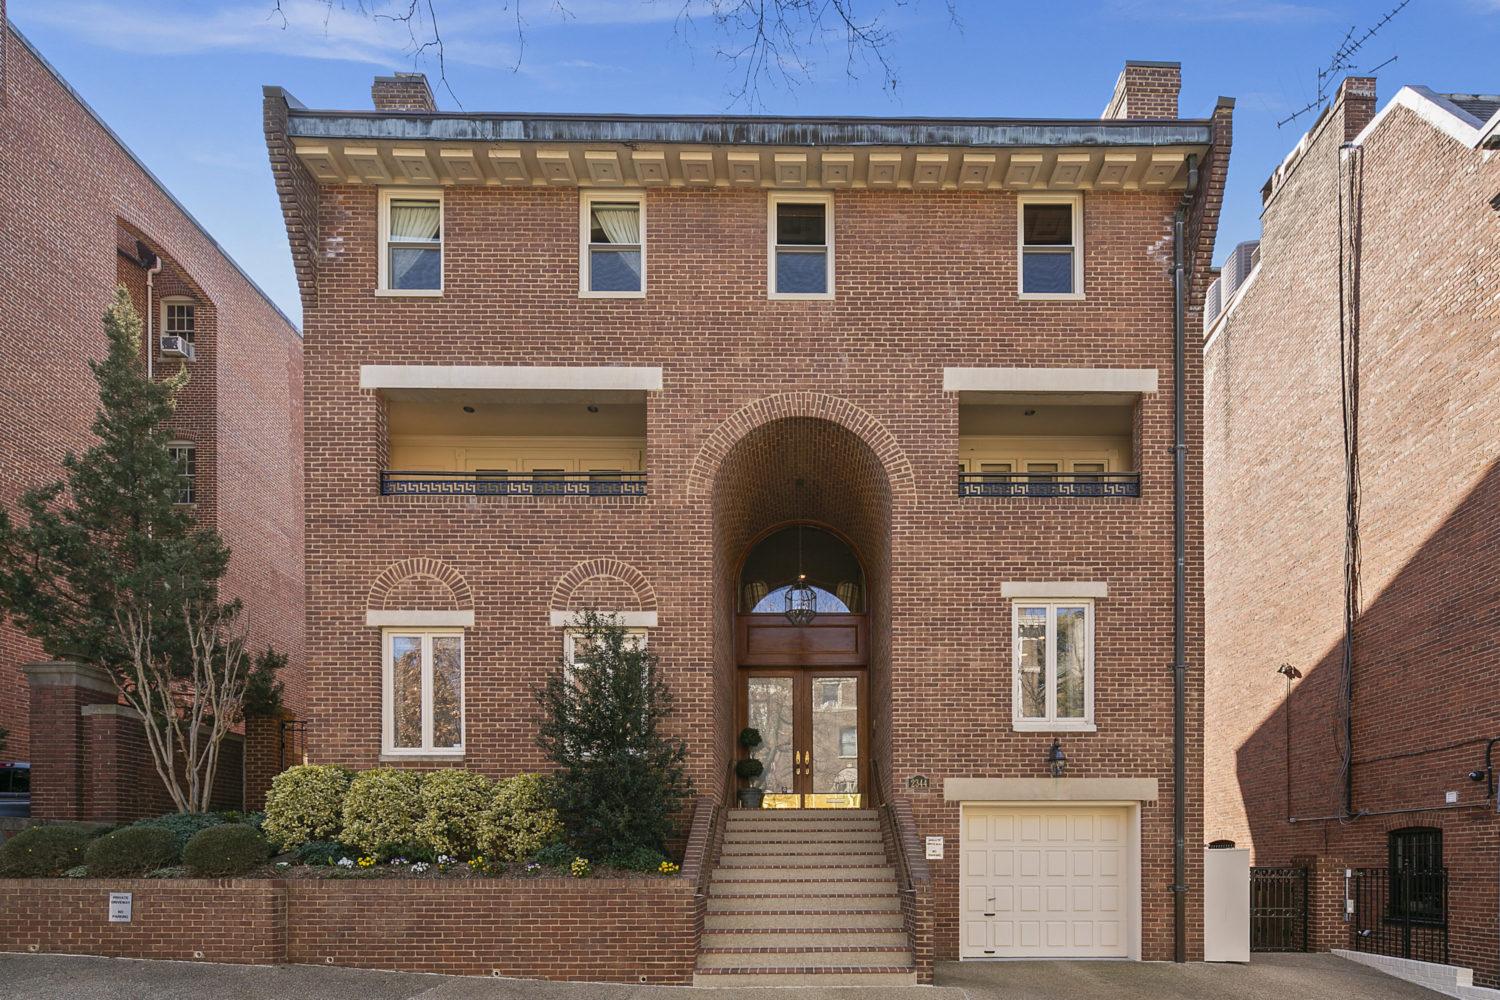 Exquisite Detached Residence with Notable Neighbors!